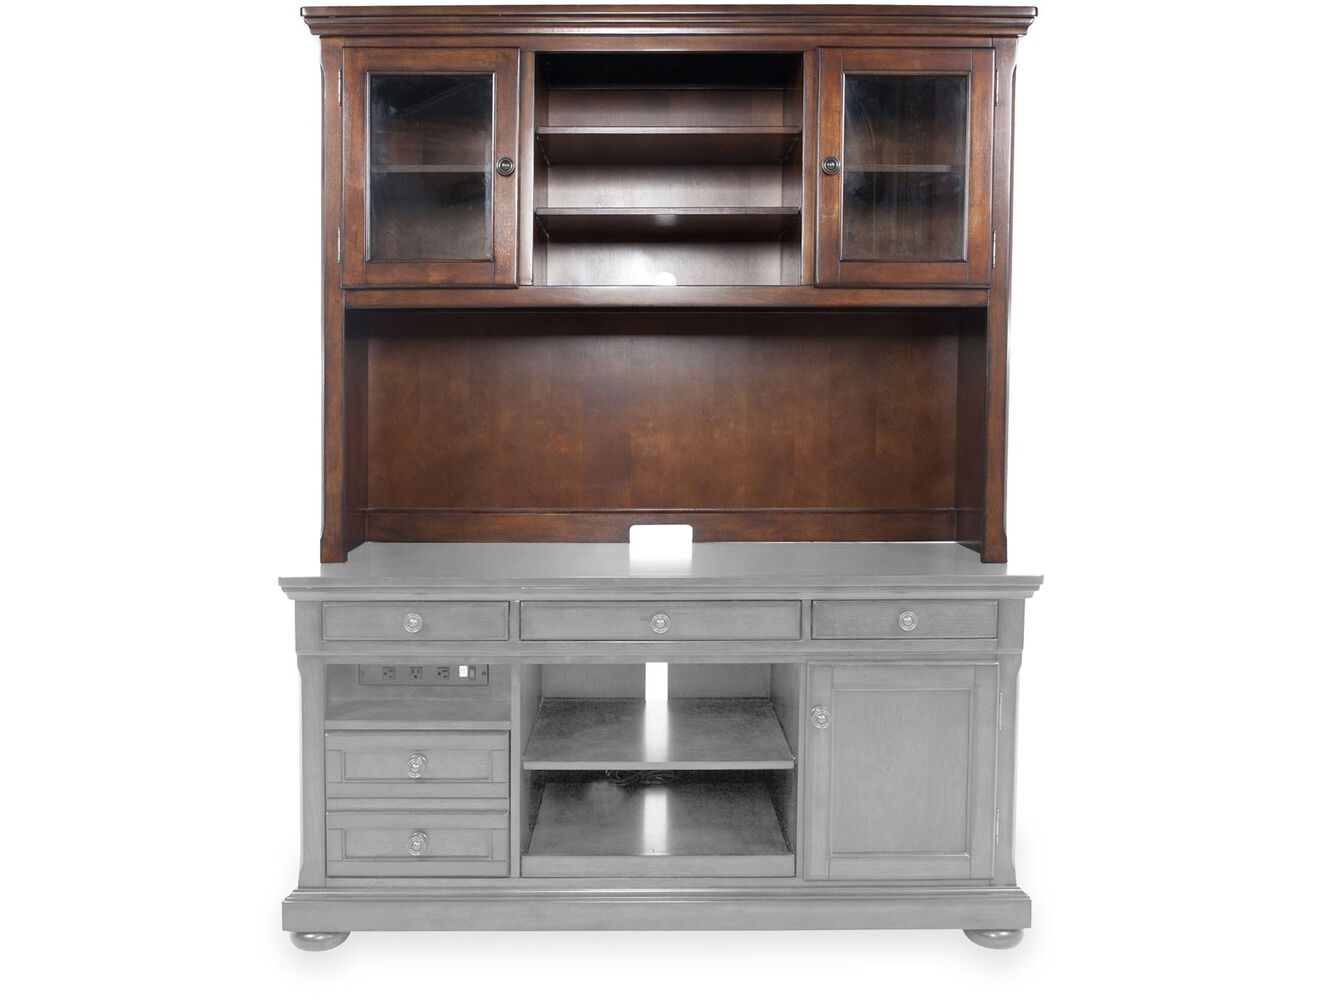 b and telluridecomputer products hutch hooker trim item office computer height credenza unit width furniture threshold telluride